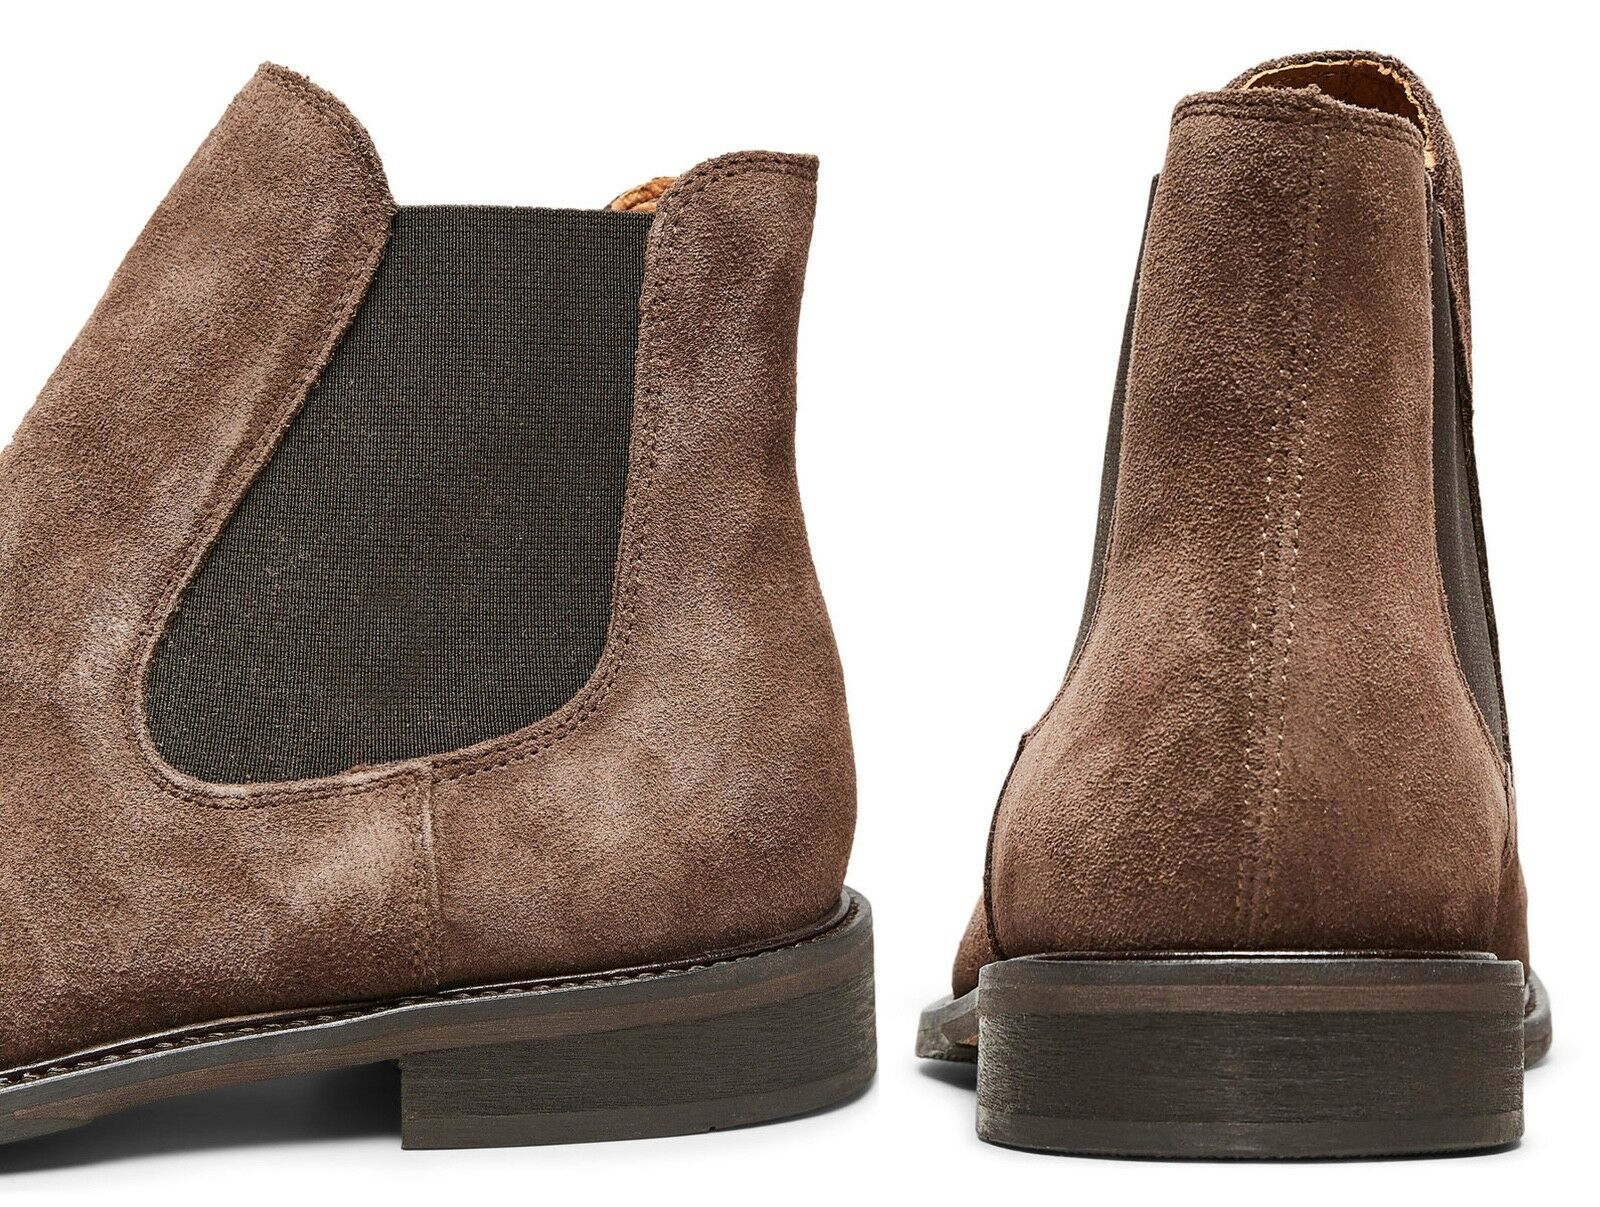 Selected Cocoa Homme Chelsea Boots High Shoes Cocoa Selected Brown Suede Leather Smart Boot 248fb4